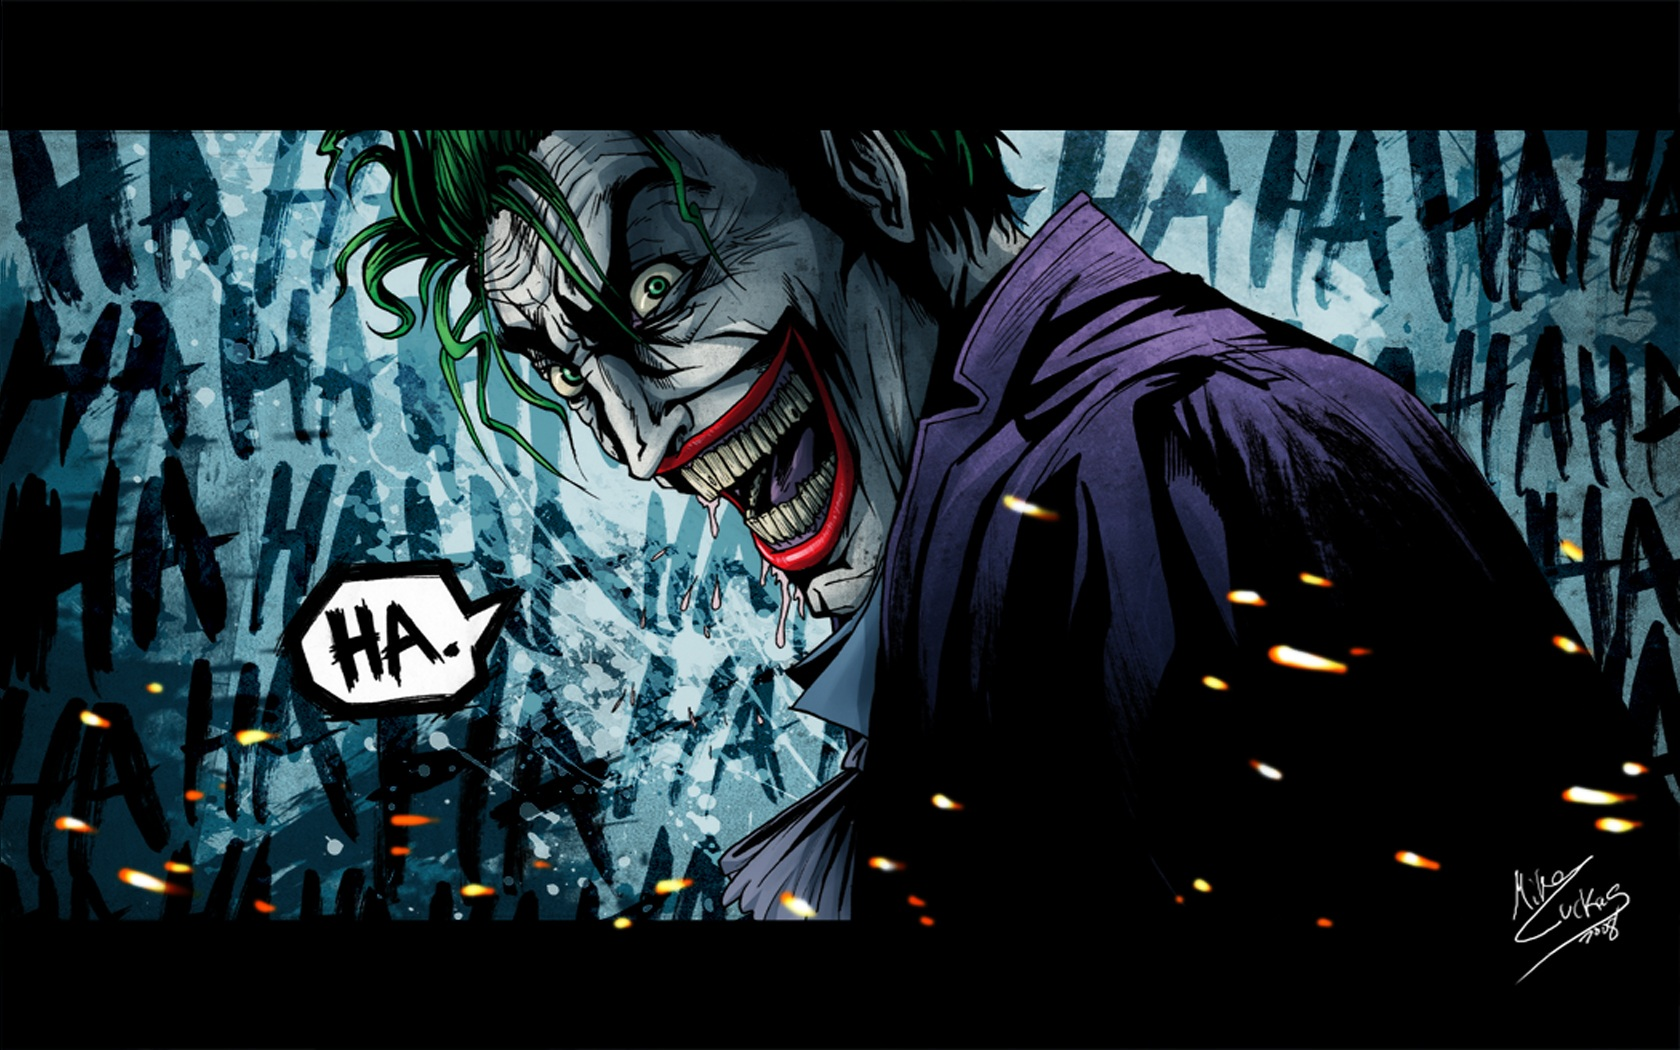 Laughing Wallpapers Joker Always Laughing Myspace Backgrounds Joker 1680x1050